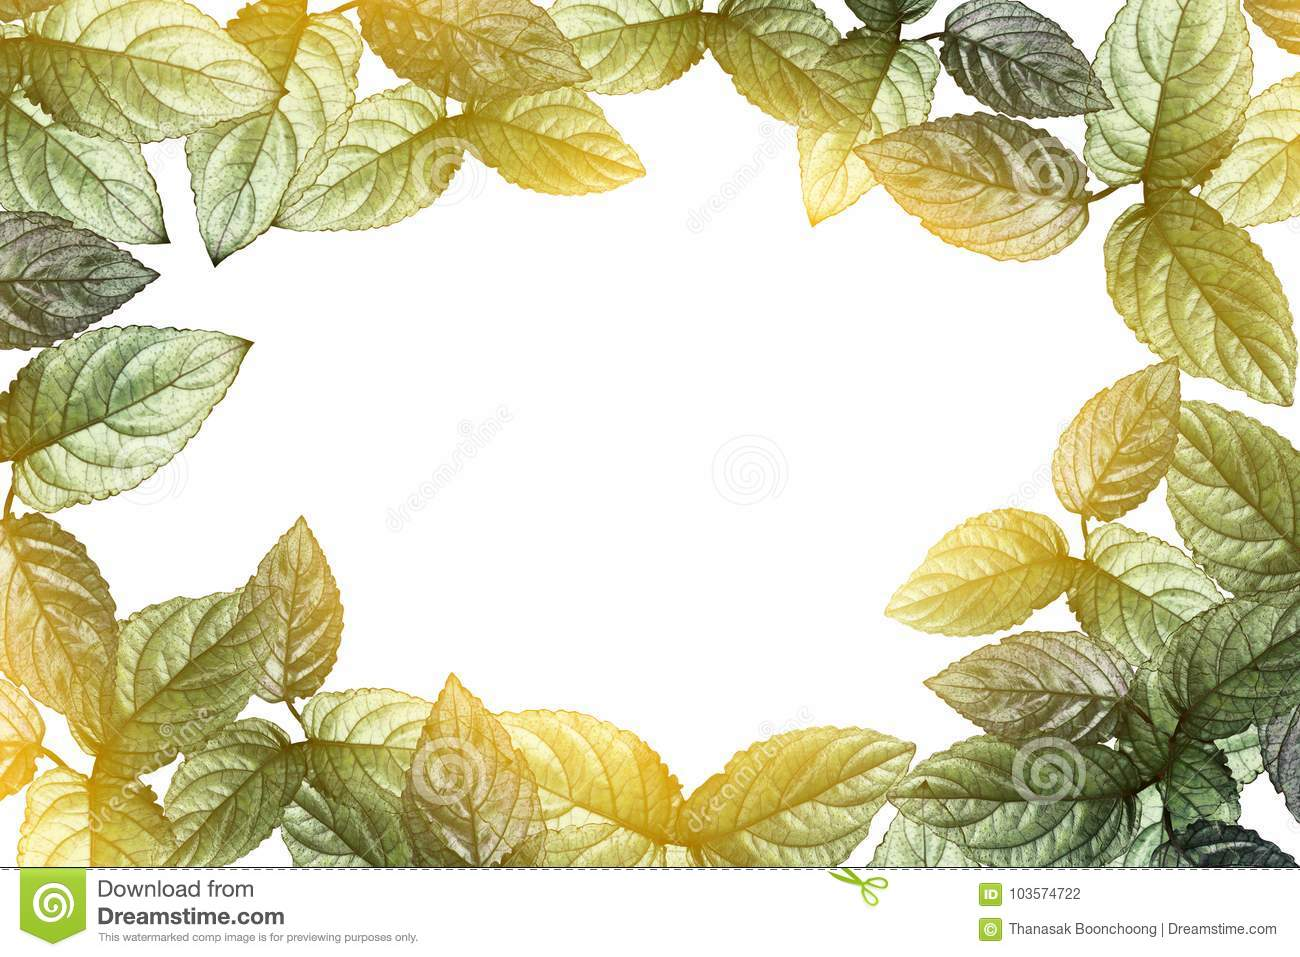 Green Leaves Border And Sunlight Transparent On White Background Stock Photo Image Of Beauty Foliage 103574722